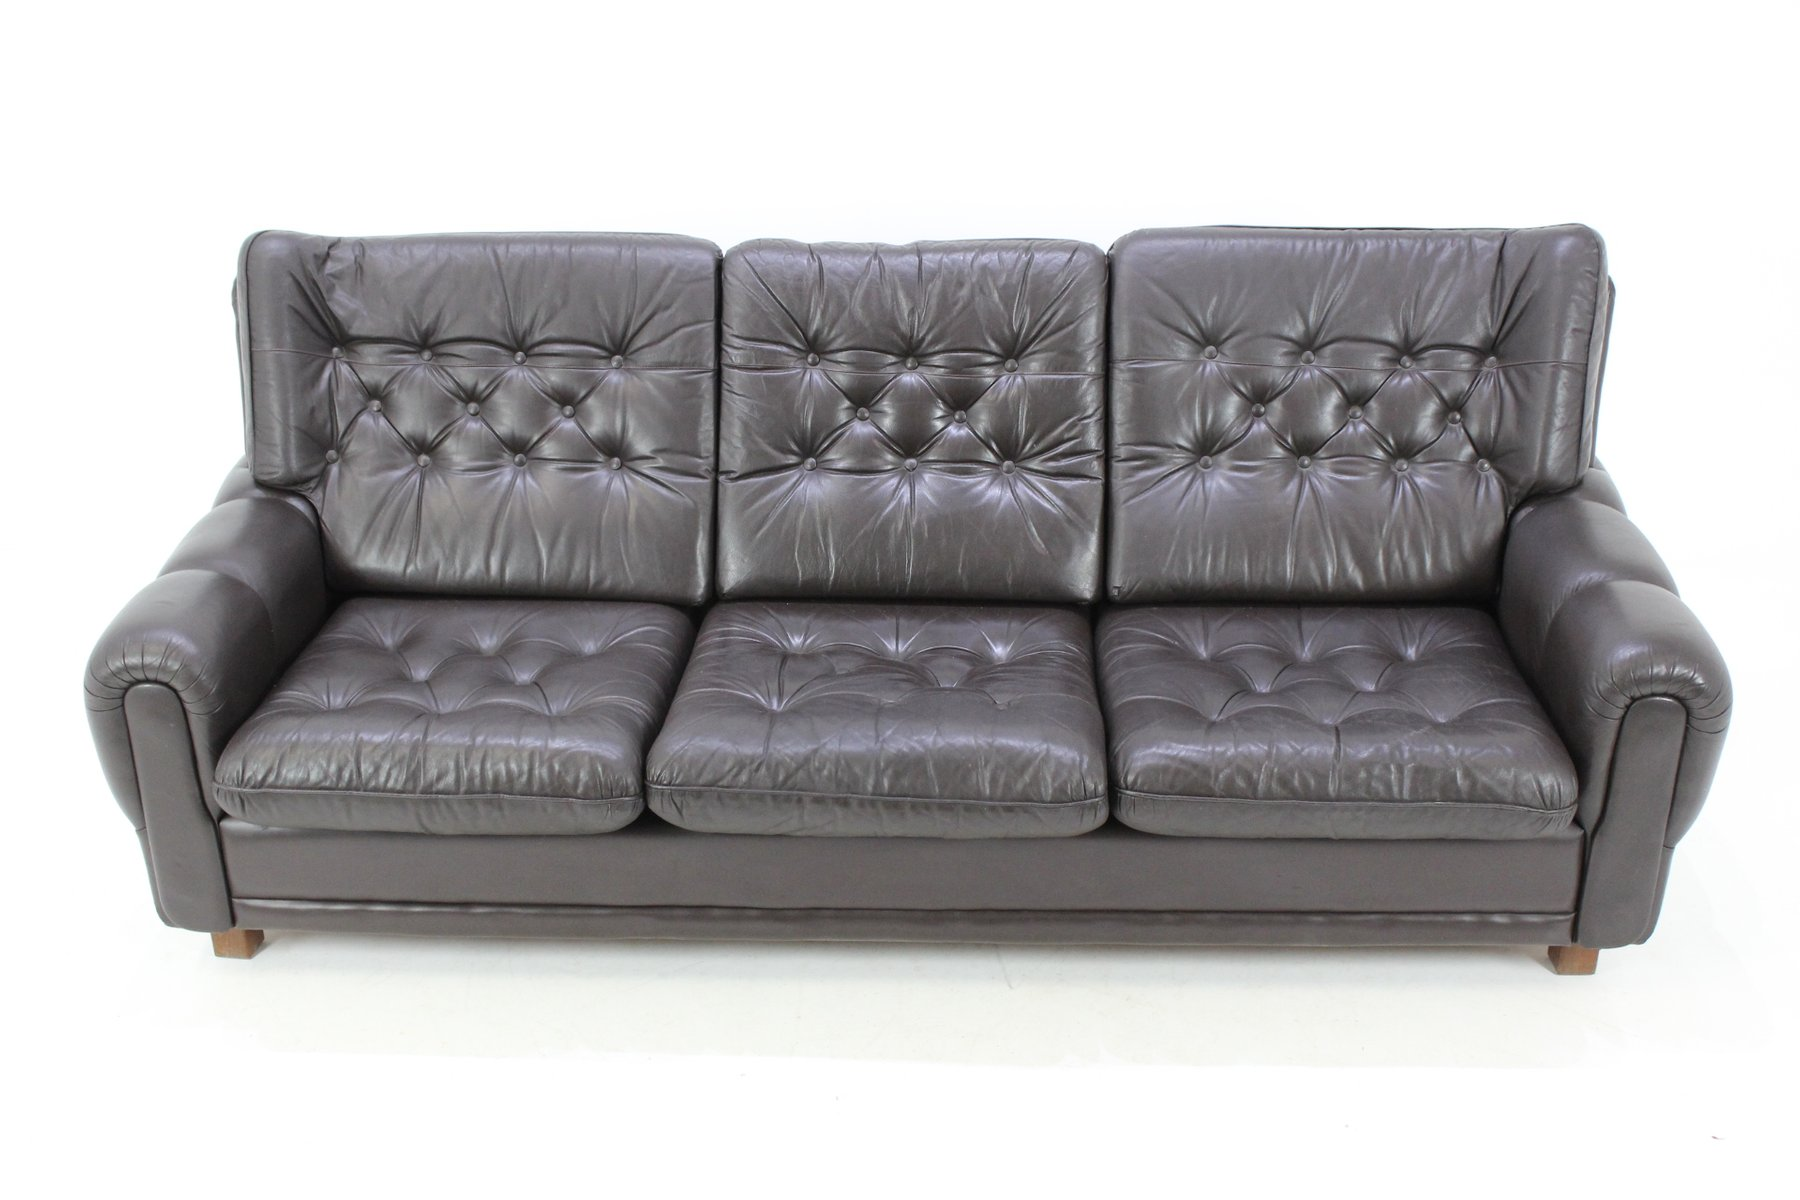 czech leather brown sofa 1970s for sale at pamono. Black Bedroom Furniture Sets. Home Design Ideas